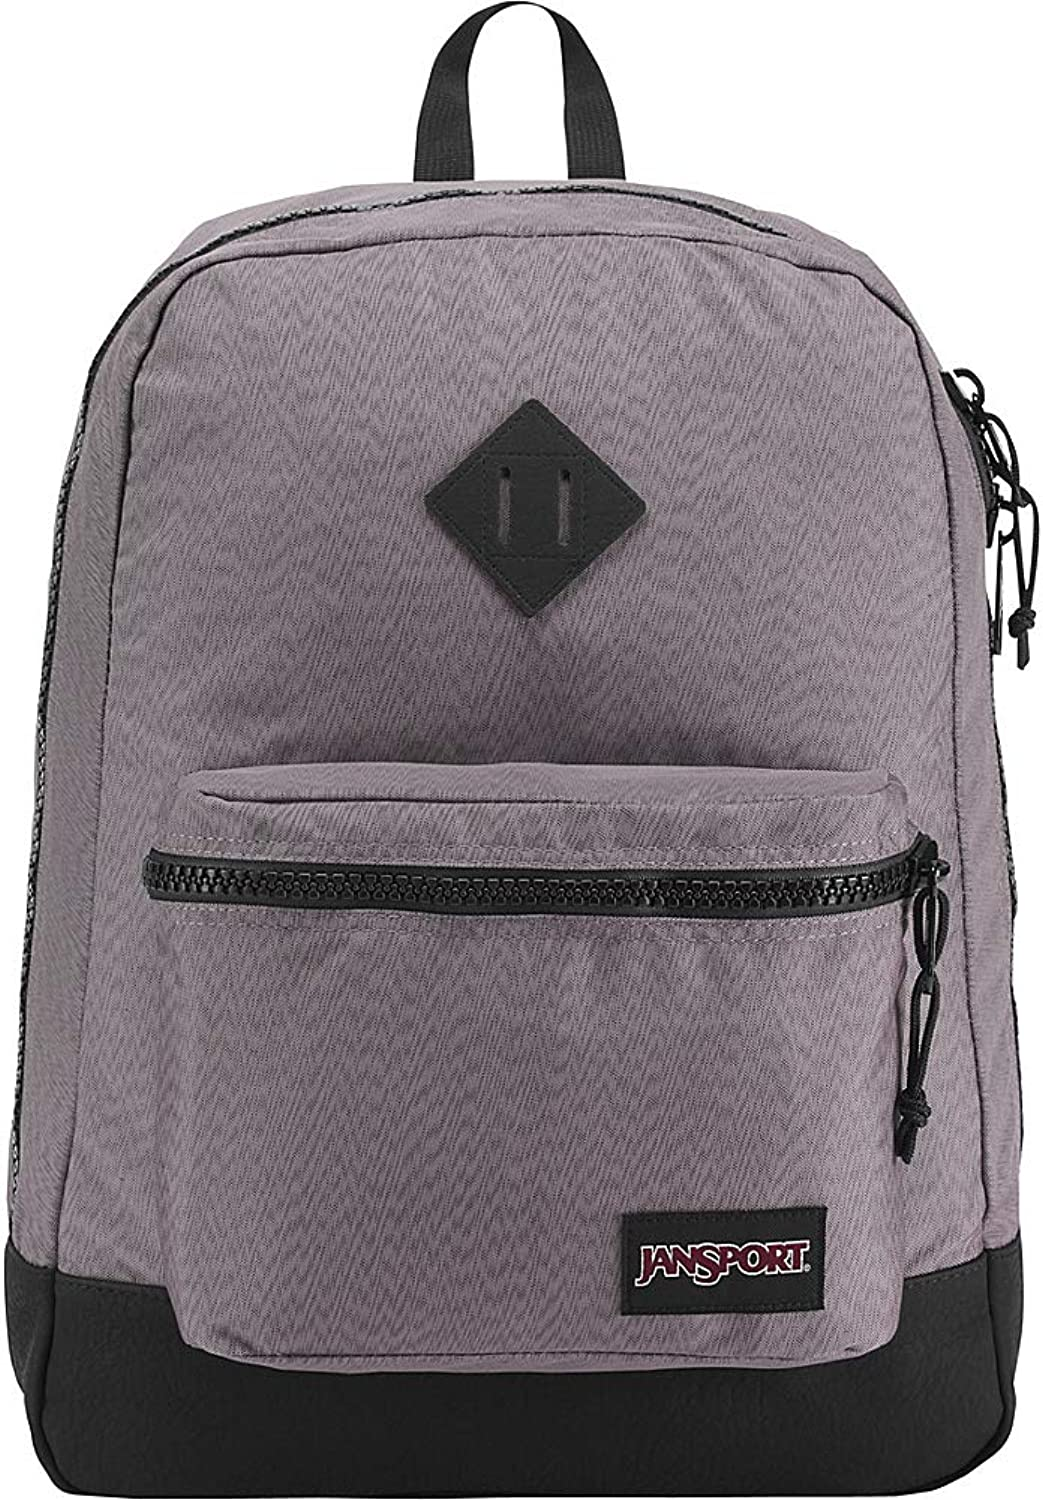 JANSPORT Super FX Back Pack Back Pack Taschen Herren B07HZ636L8